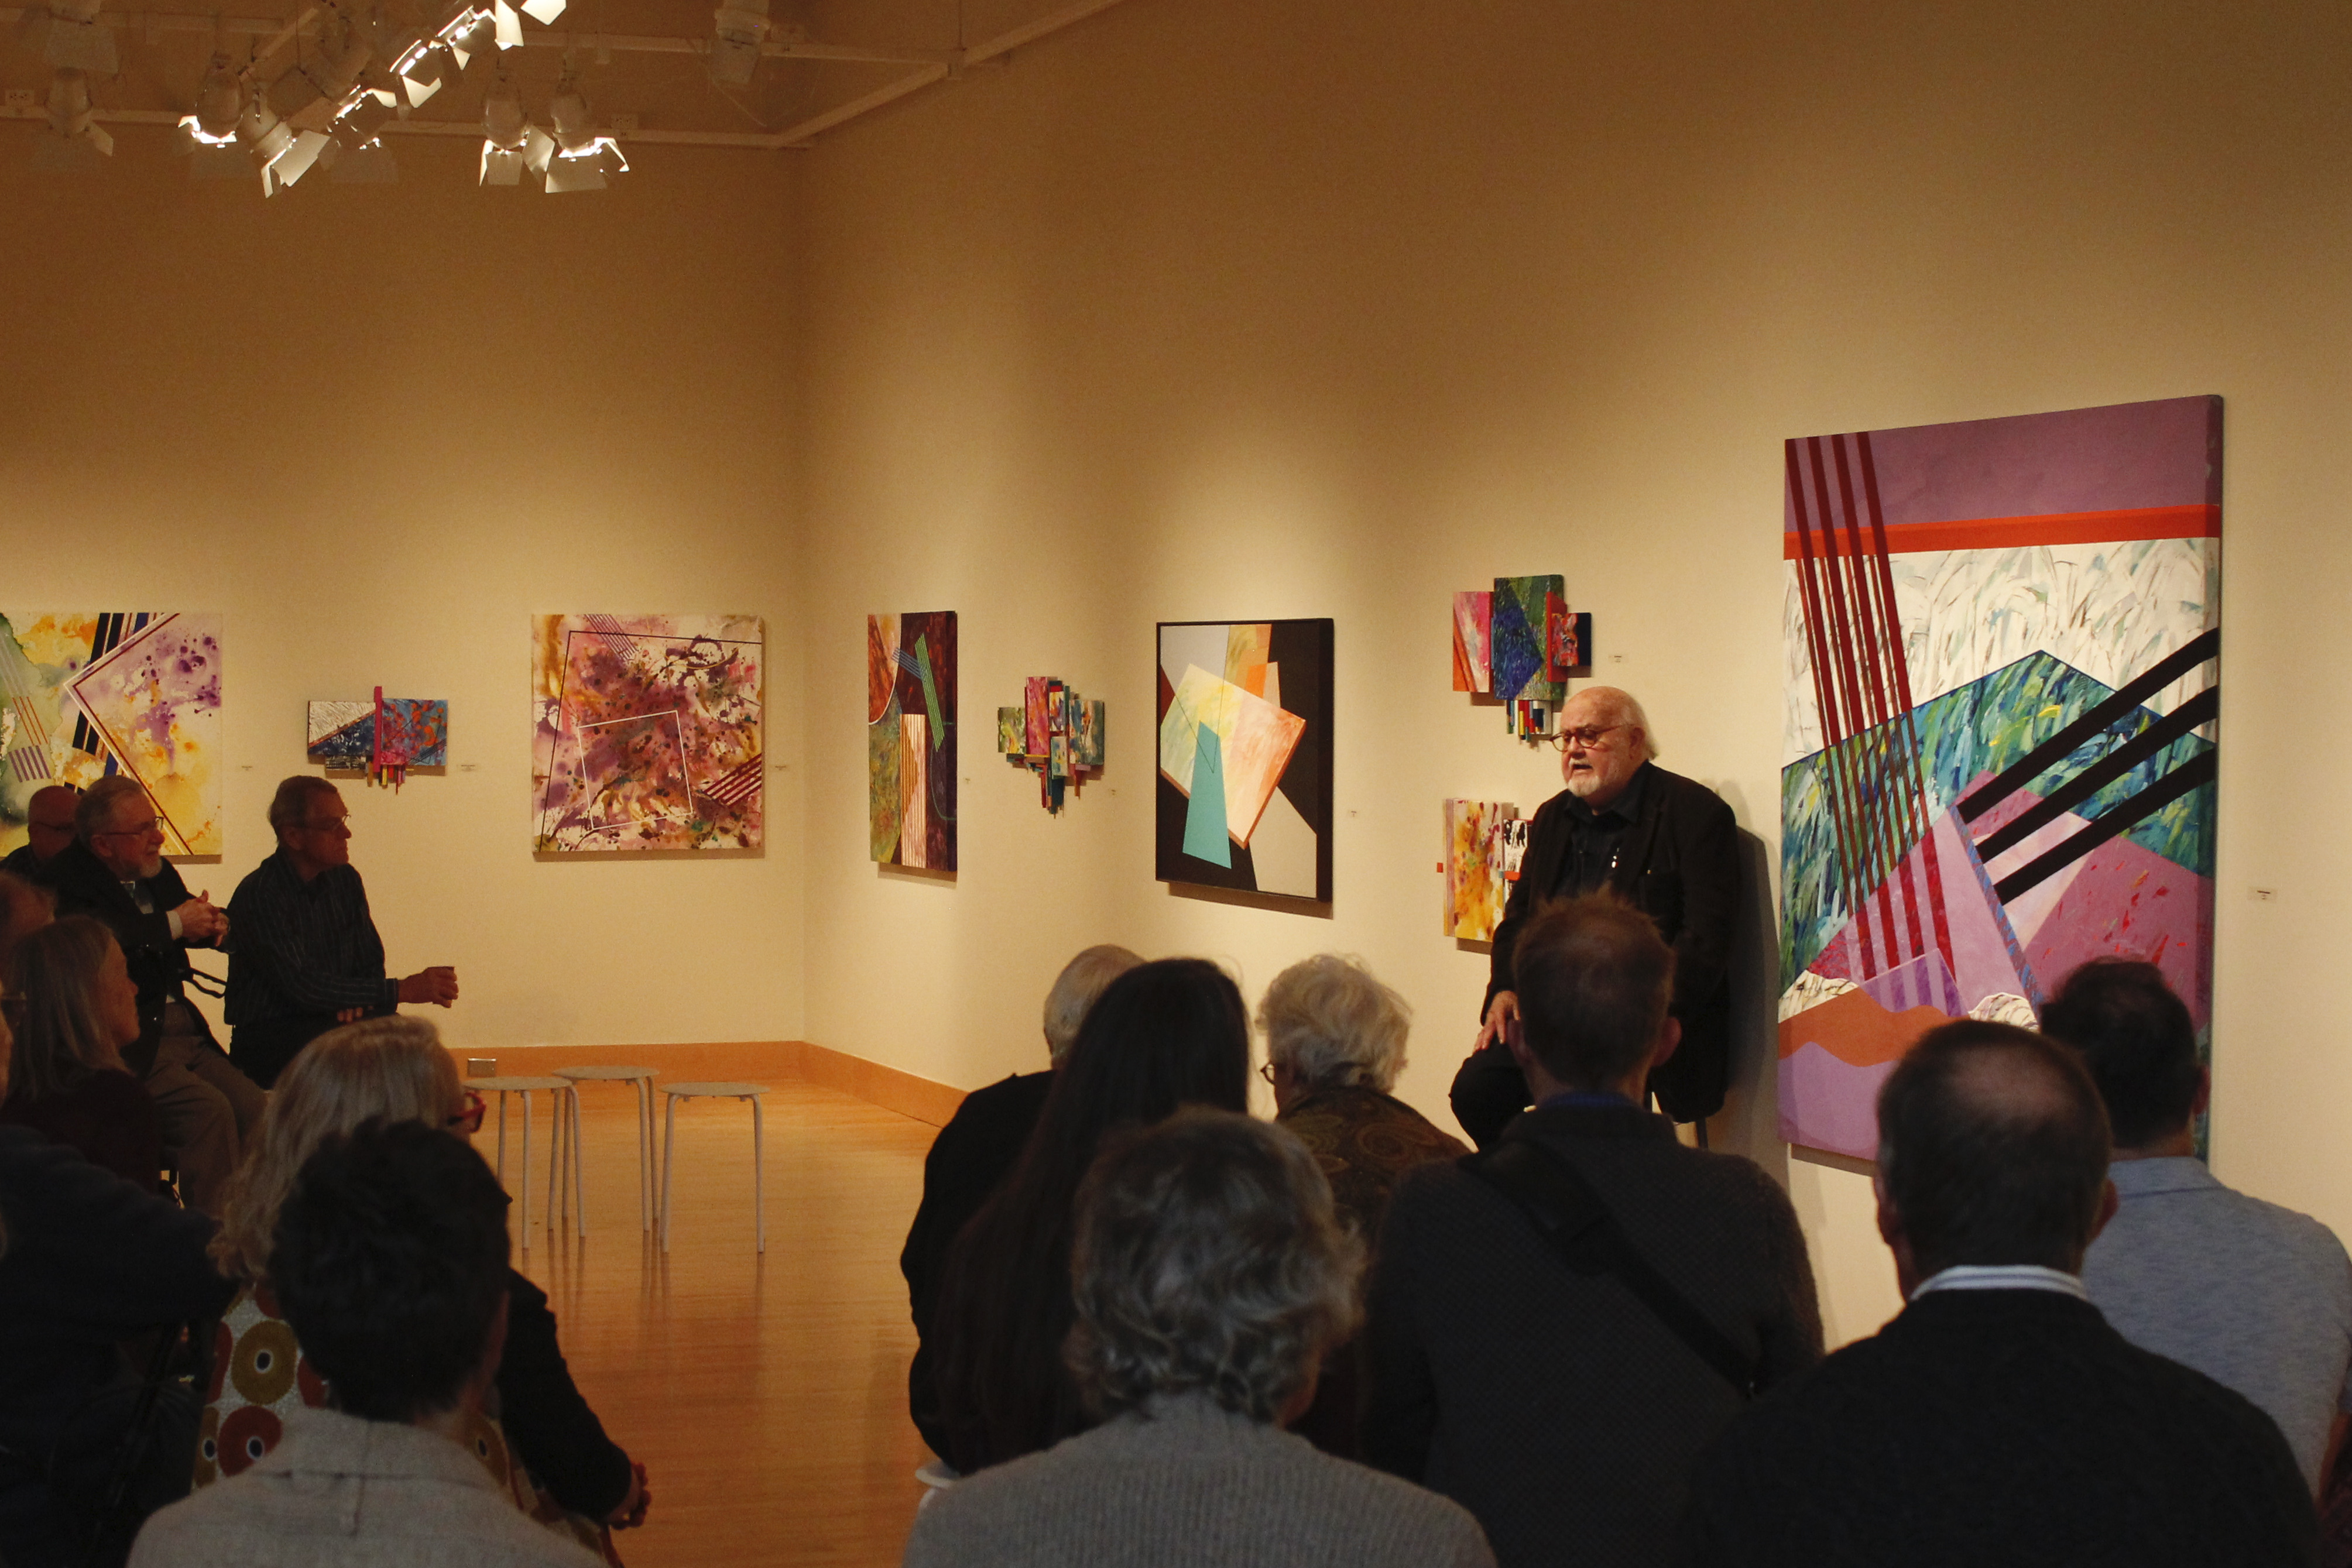 Abner Hershberger presents his artwork to an audience in the Hershberger Art Gallery